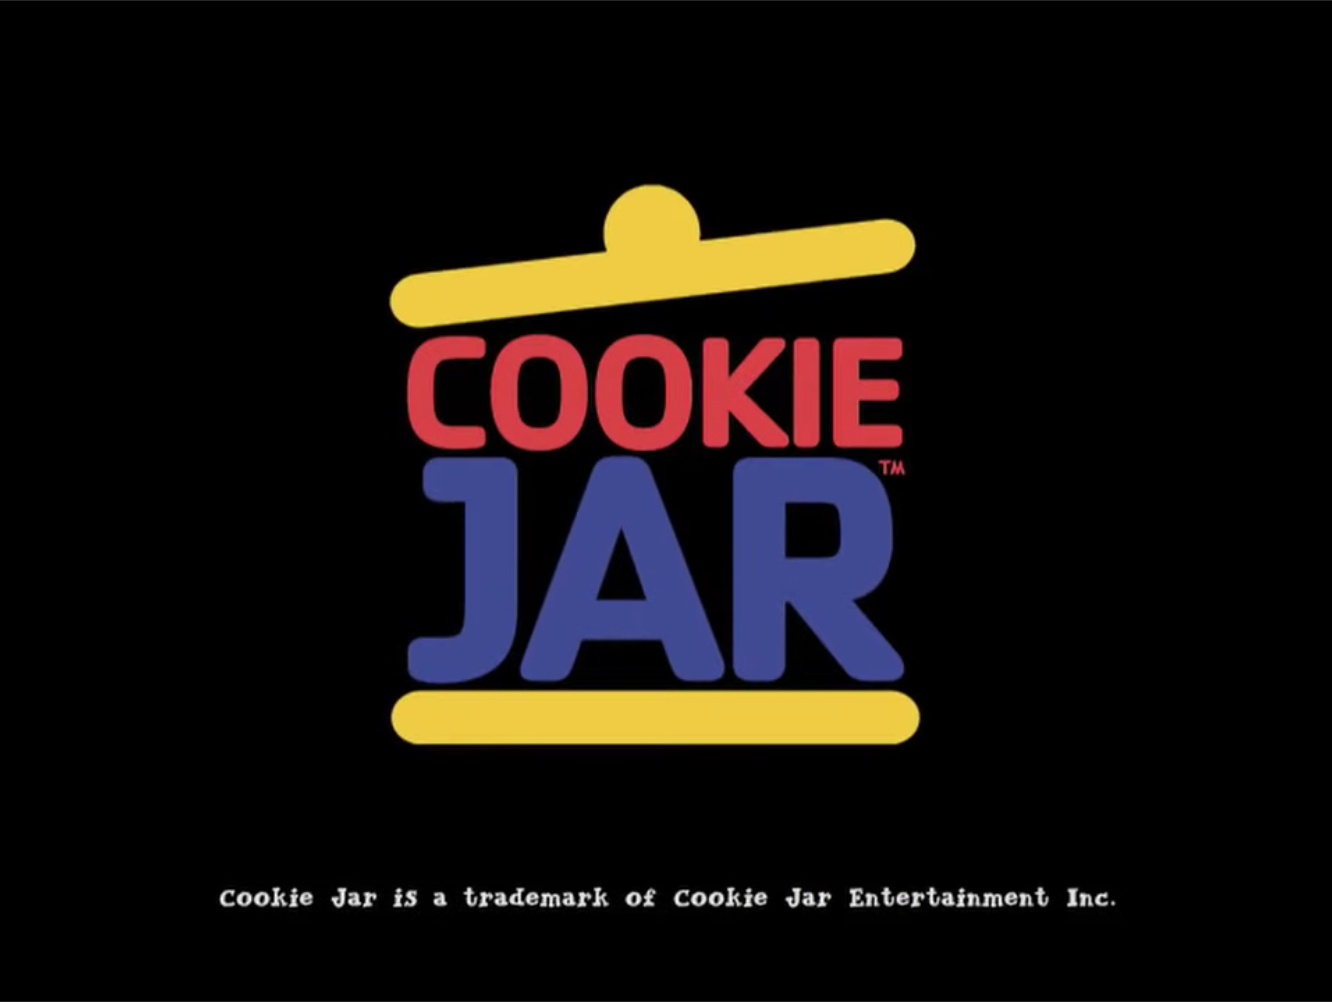 Cookie Jar Group/Other